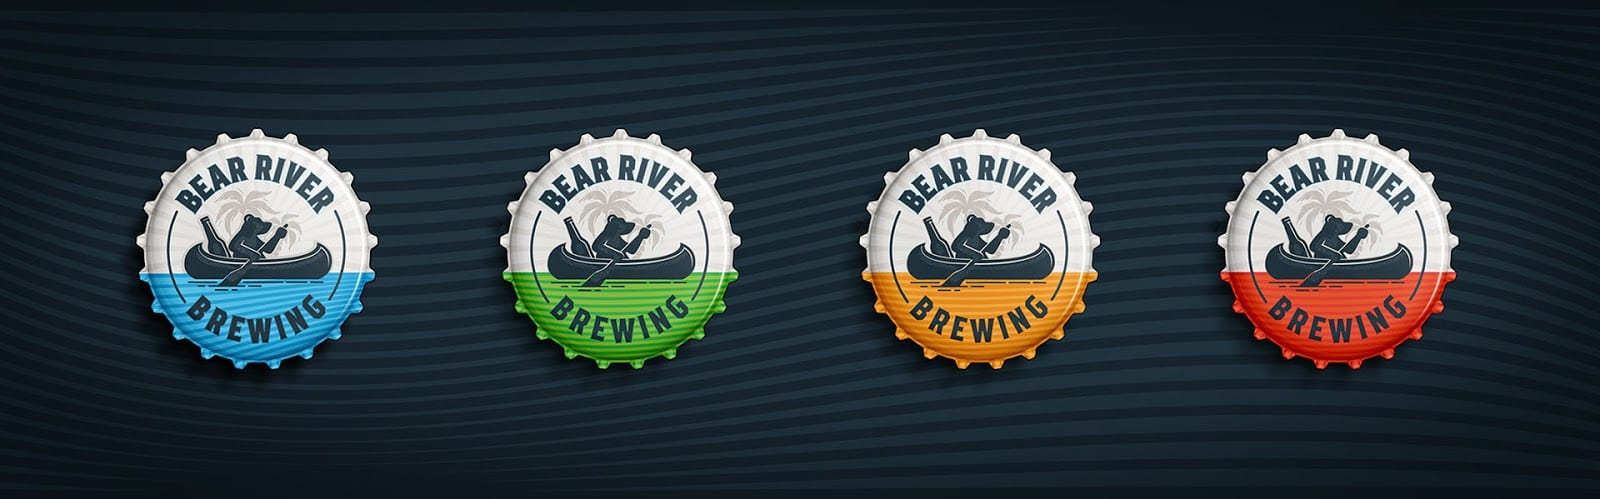 Bear River Brewing Branding 011 - Ach, tie obaly – Bear River Brewing